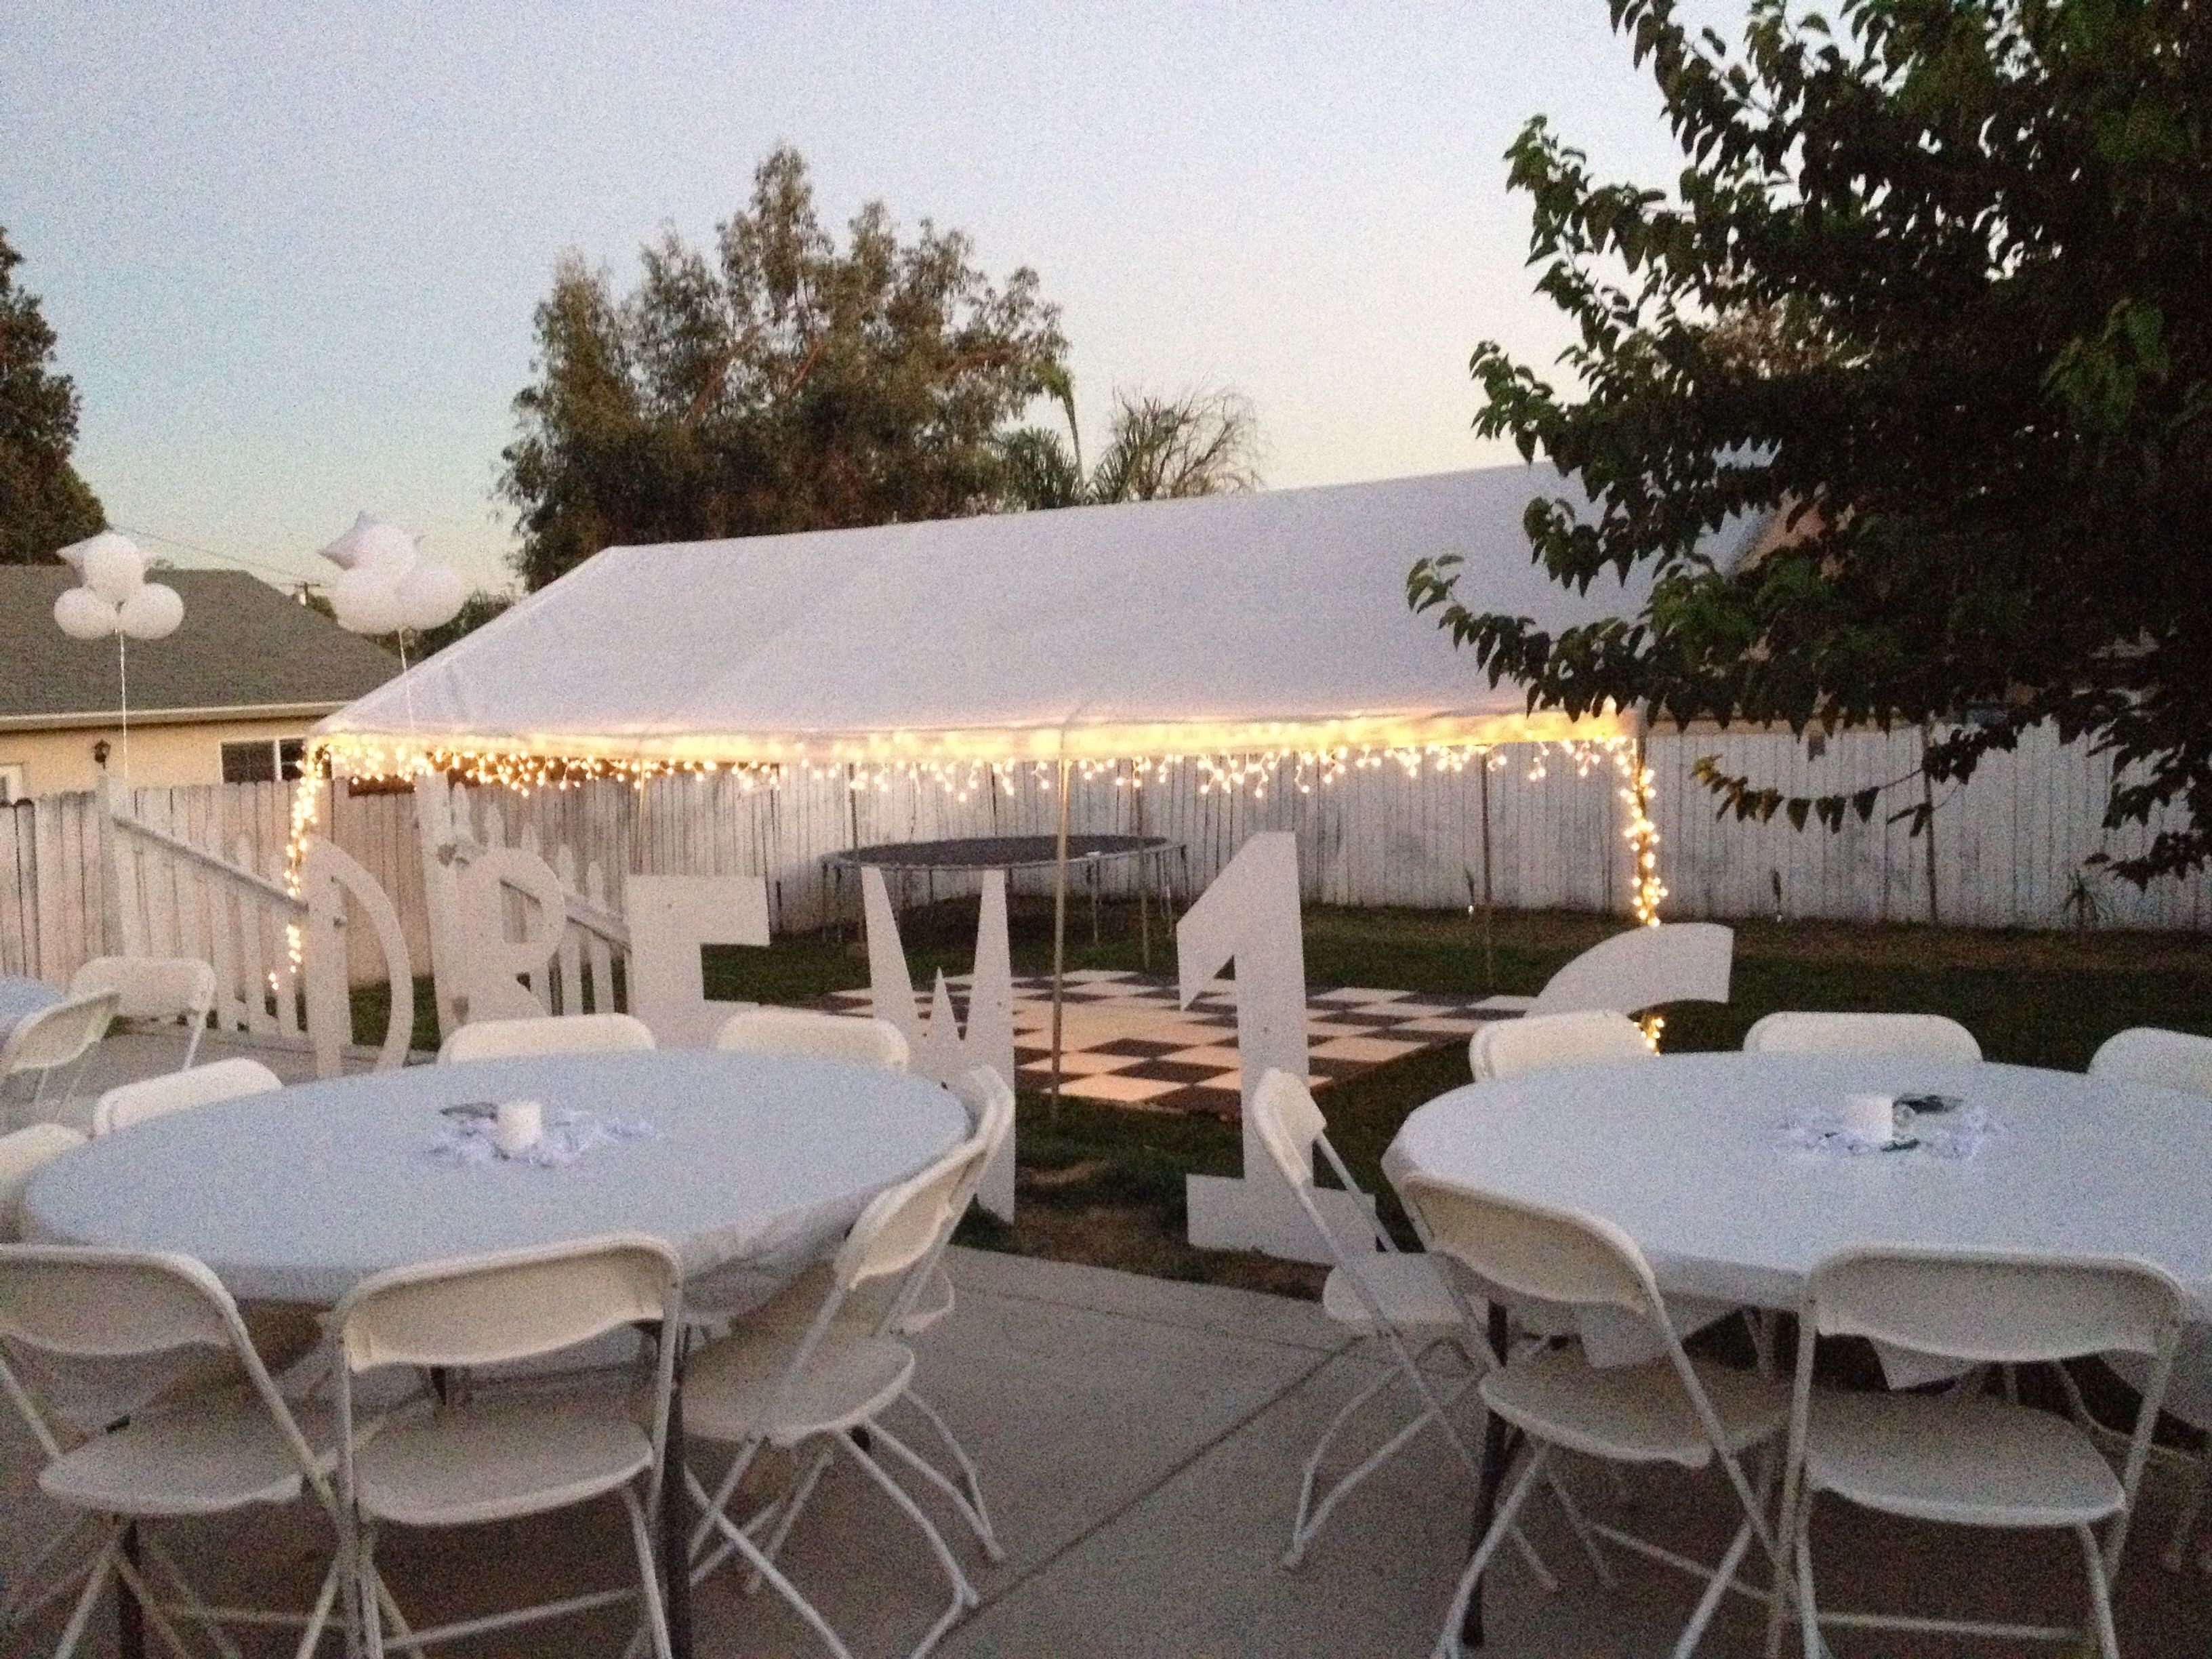 All White Party Backyard Set Up Backyard Party Backyard Bbq